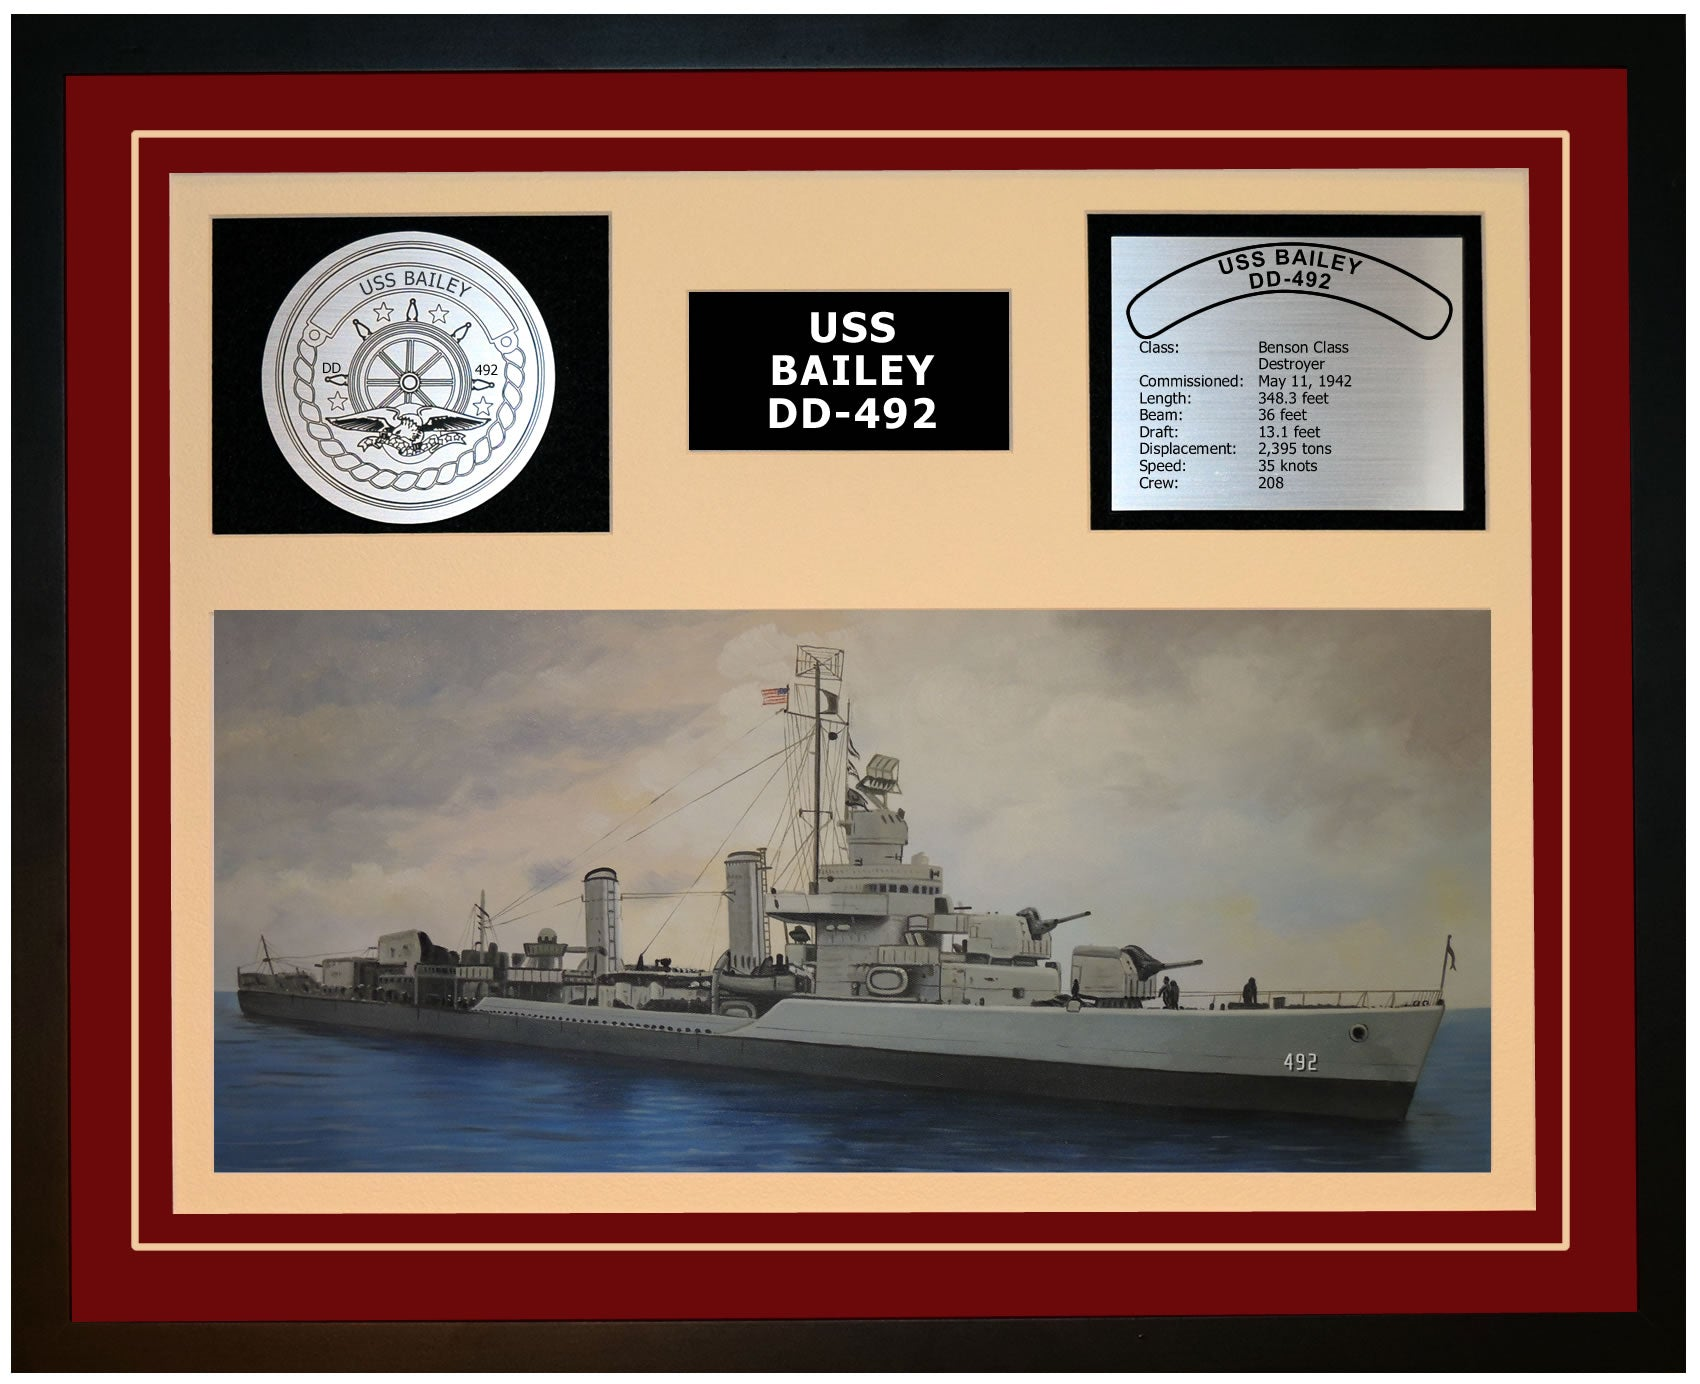 USS BAILEY DD-492 Framed Navy Ship Display Burgundy